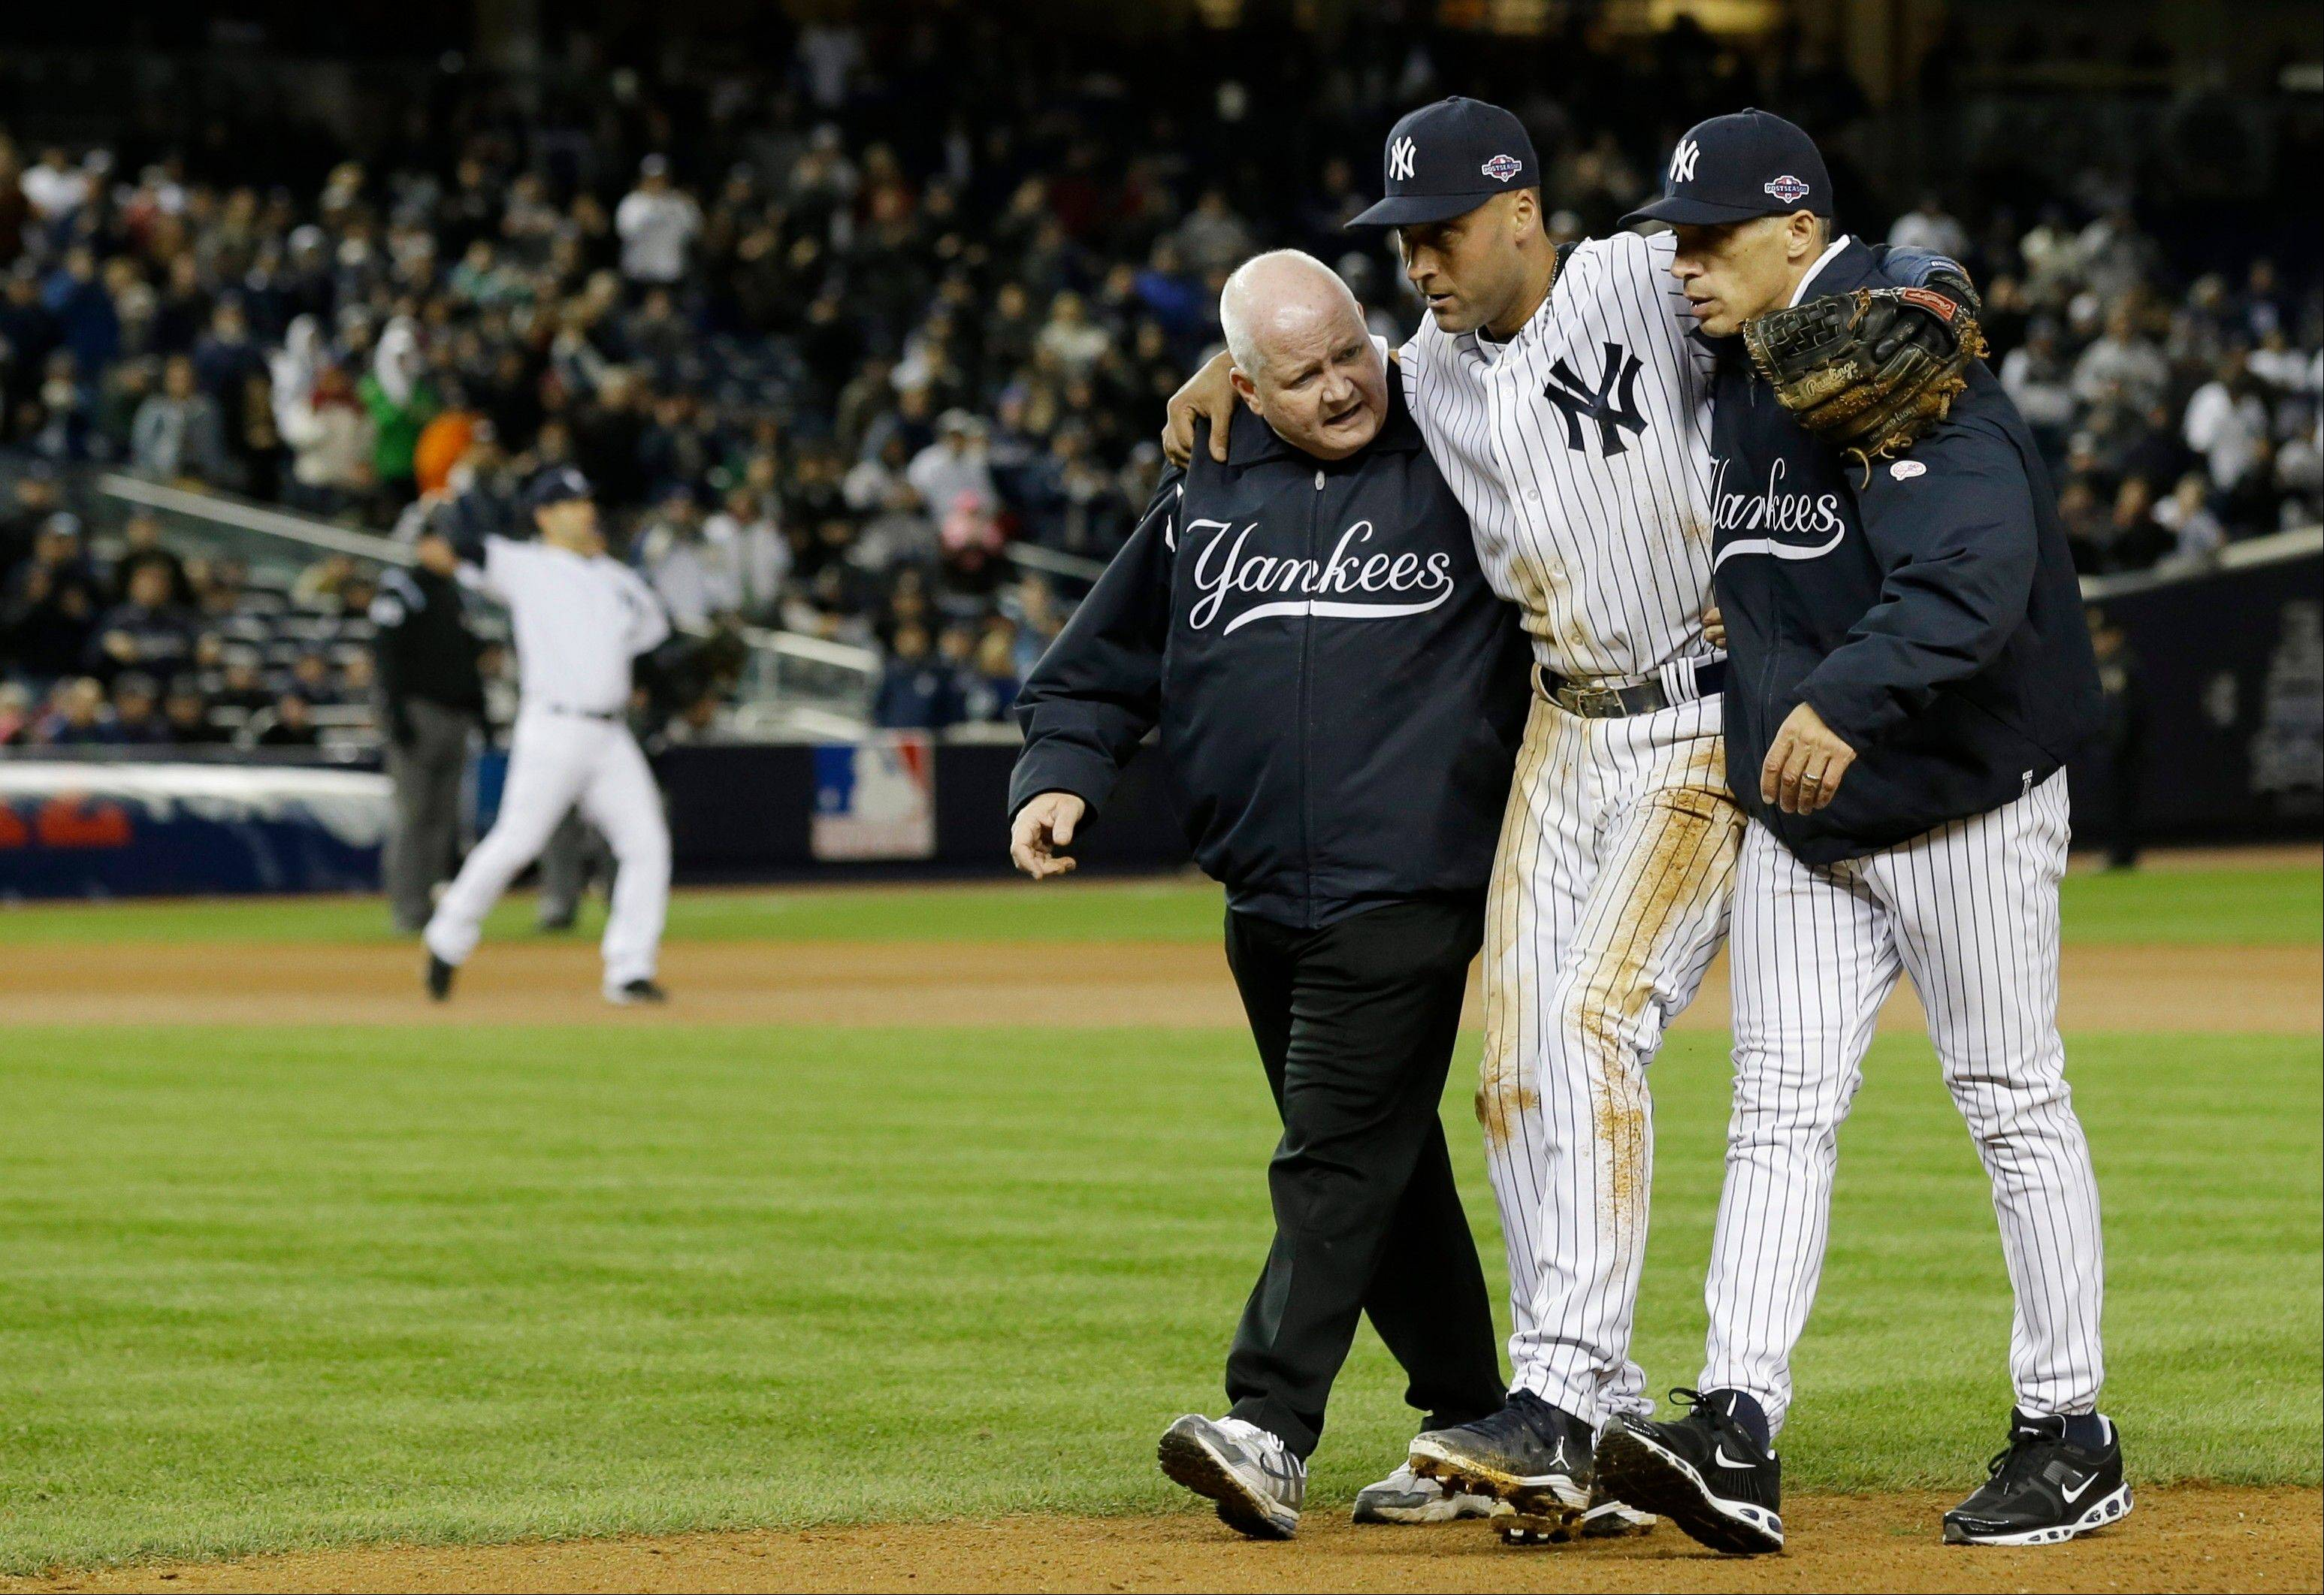 Trainer Steve Donohue, left, and New York Yankees manager Joe Girardi, right, help Derek Jeter off the field after he injured himself during Game 1 of the American League championship series against the Detroit Tigers Sunday, Oct. 14, 2012, in New York.